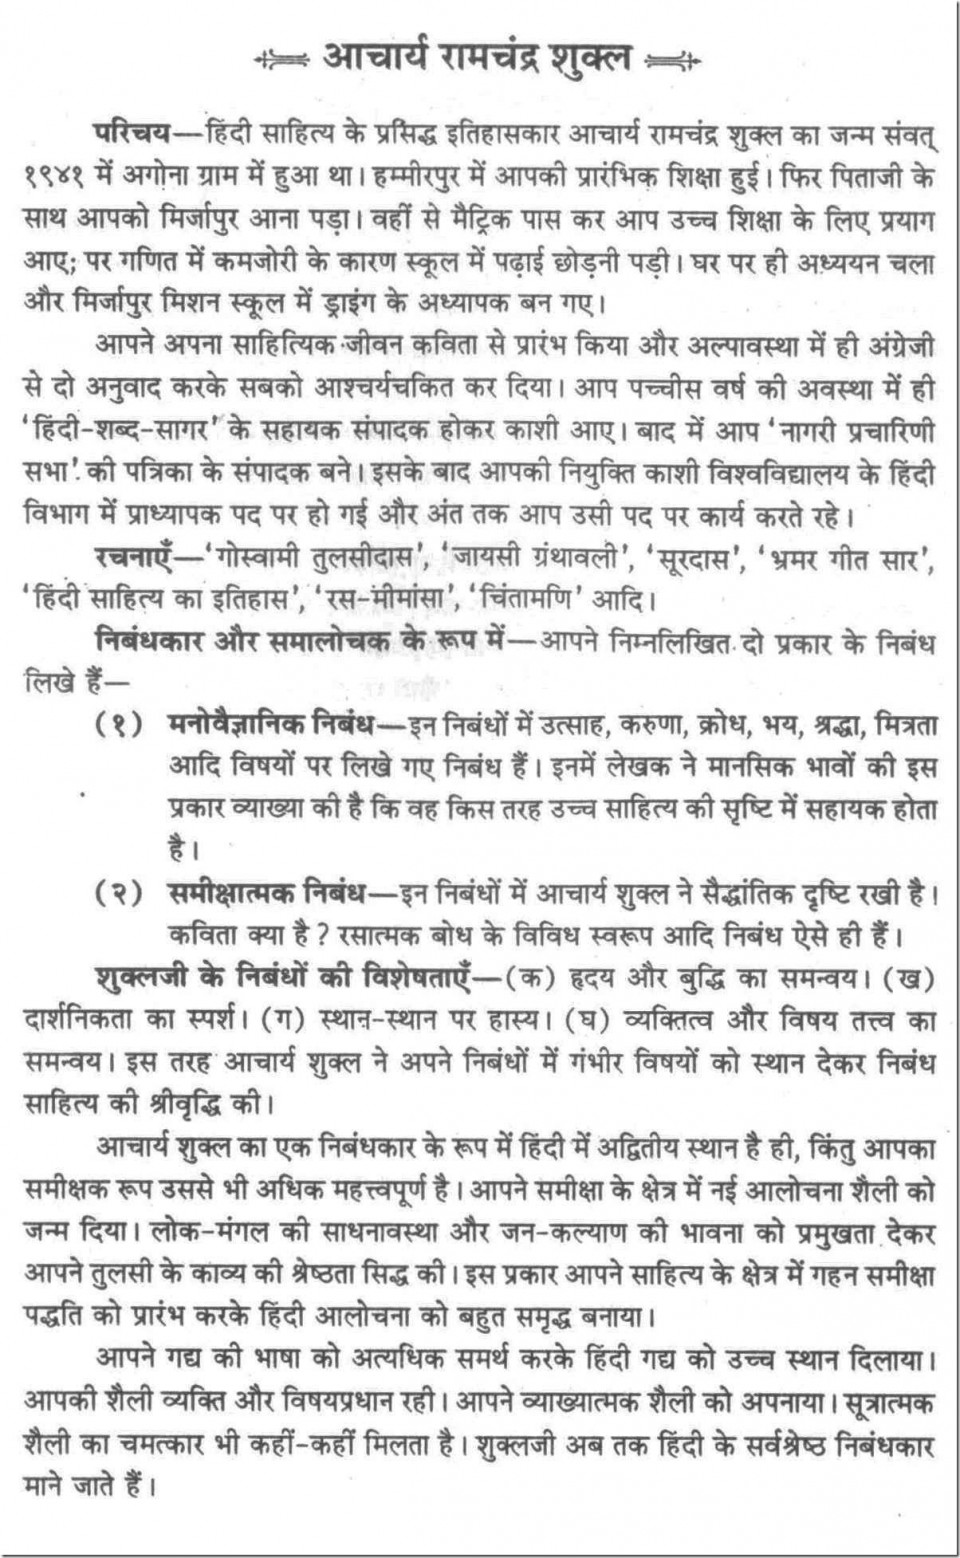 010 Essay On Helping Friend In Trouble 100018 Thumb Excellent A Narrative Hindi 960